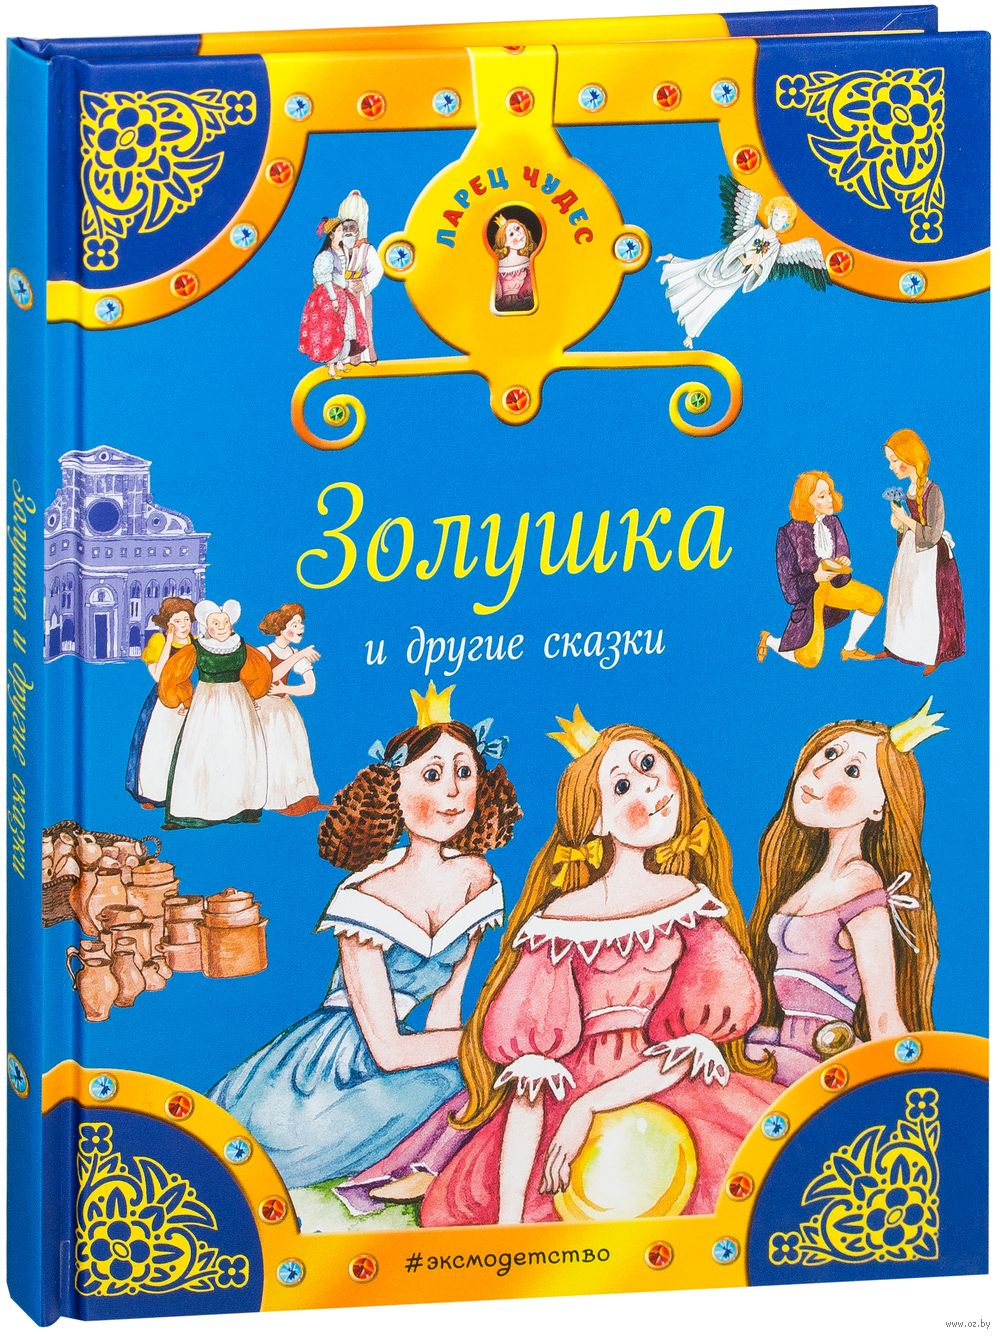 cinderella brothers grimm and traditional fairy tale essay Analysis of grimm's cinderella essay the fairy tale cinderella cinderella and the feminist struggle for independence essay reader the brothers' grimm.